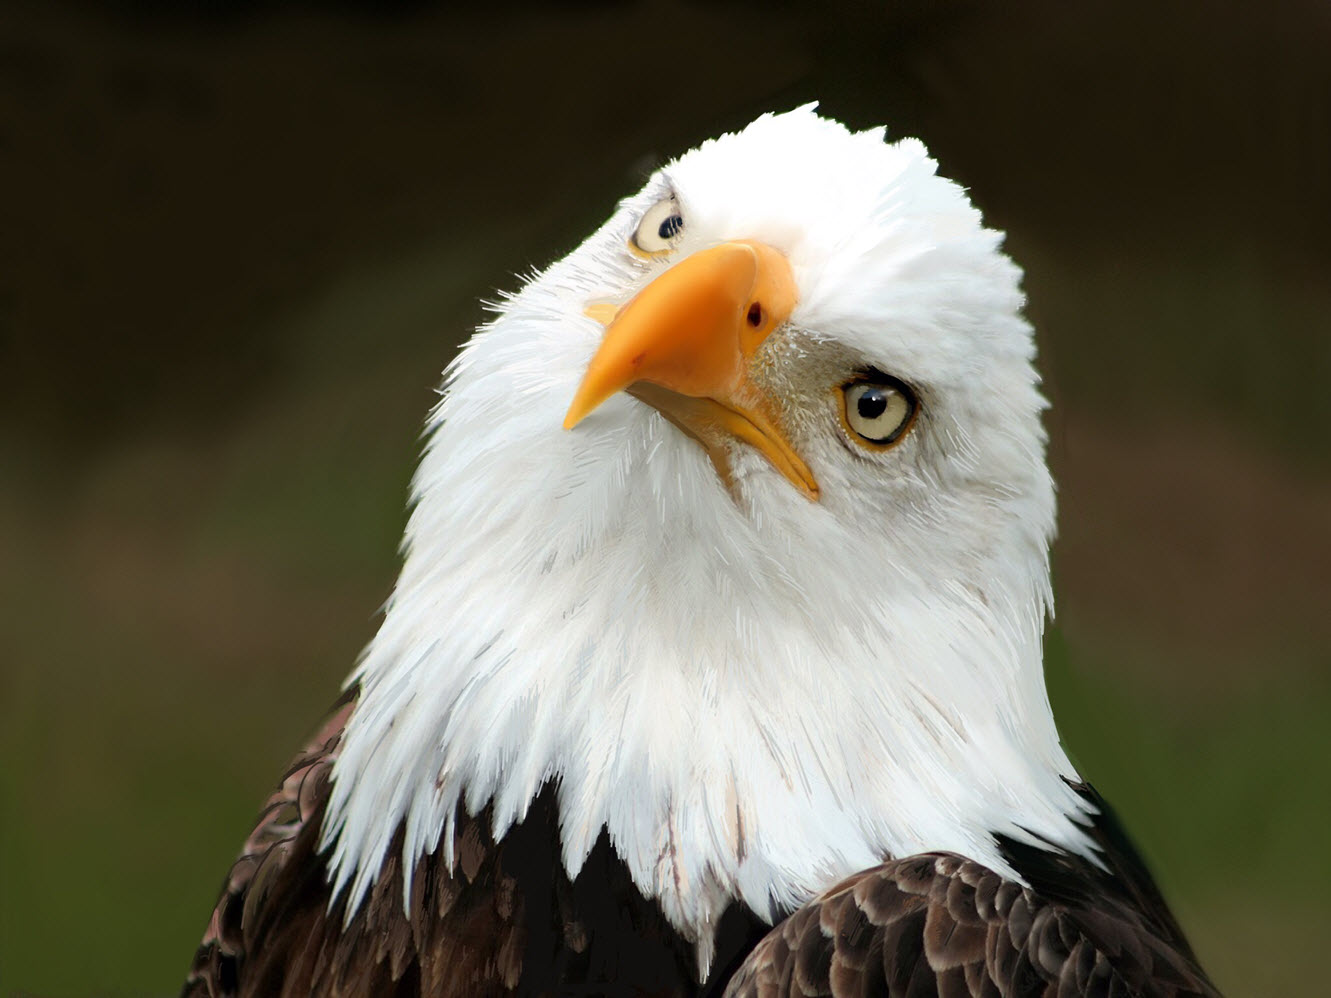 Our National Bird, the Bald Eagle